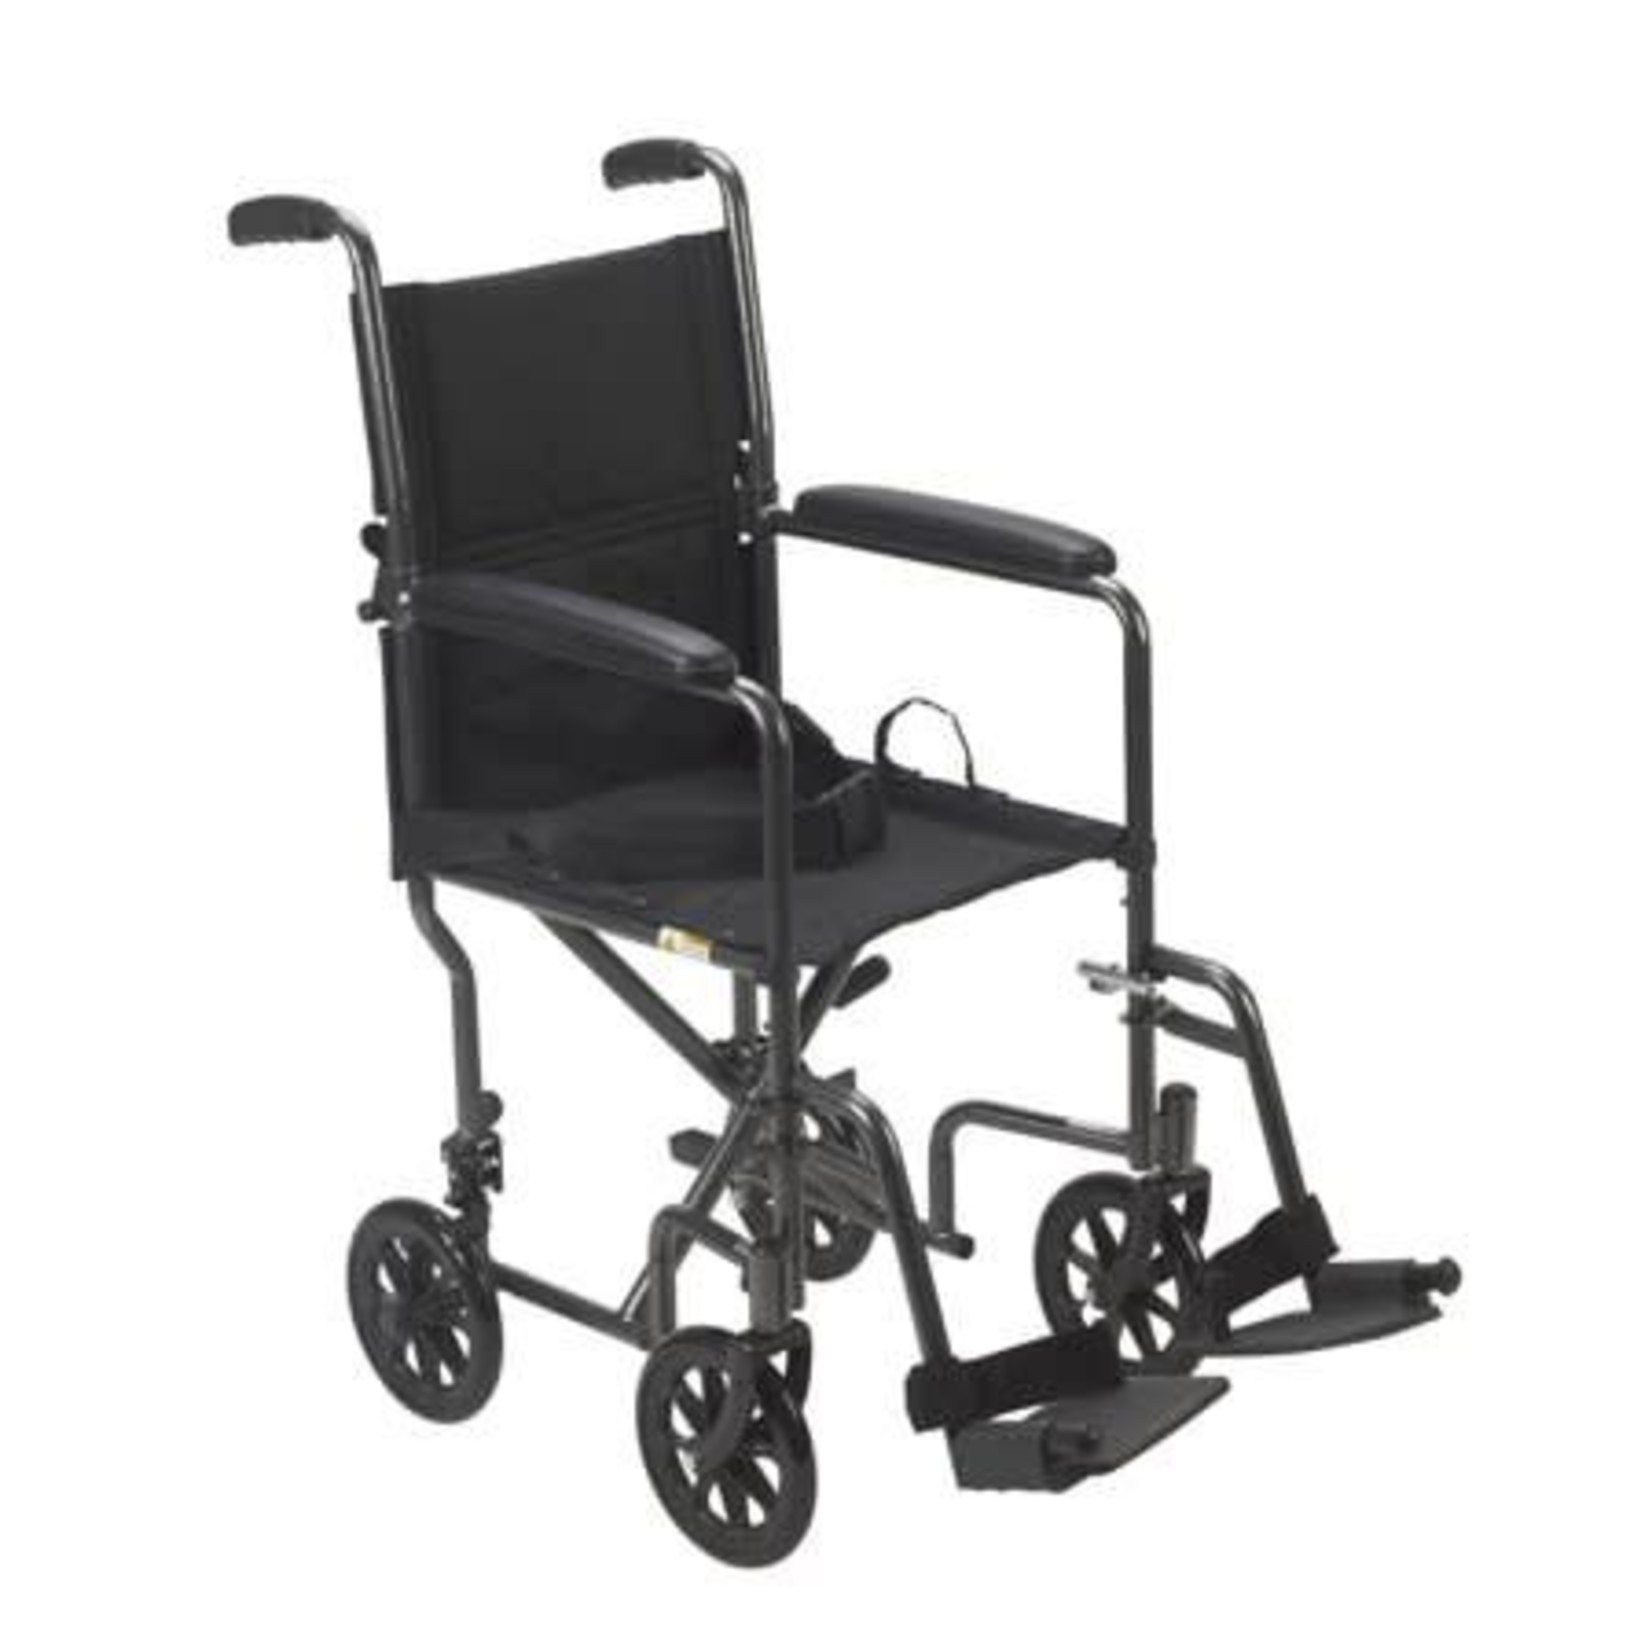 Transport Chair - Rental Reservation in Eastern Palm Beach County